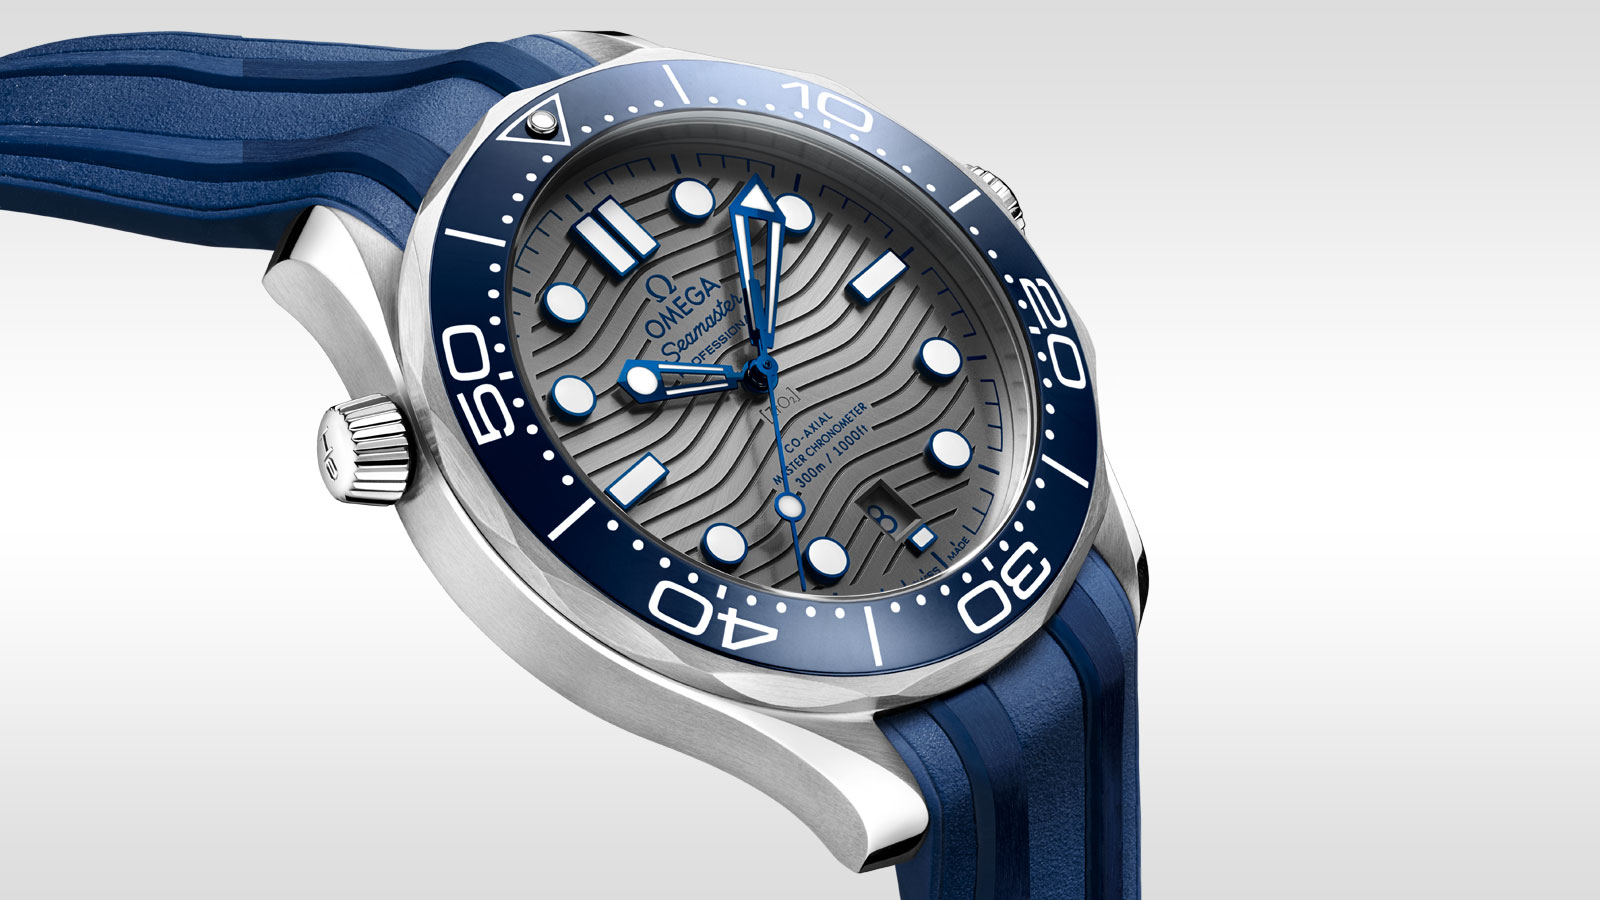 Seamaster Diver 300 M Diver 300M Omega Co‑Axial Master Chronometer 42 mm - 210.32.42.20.06.001 - View 2